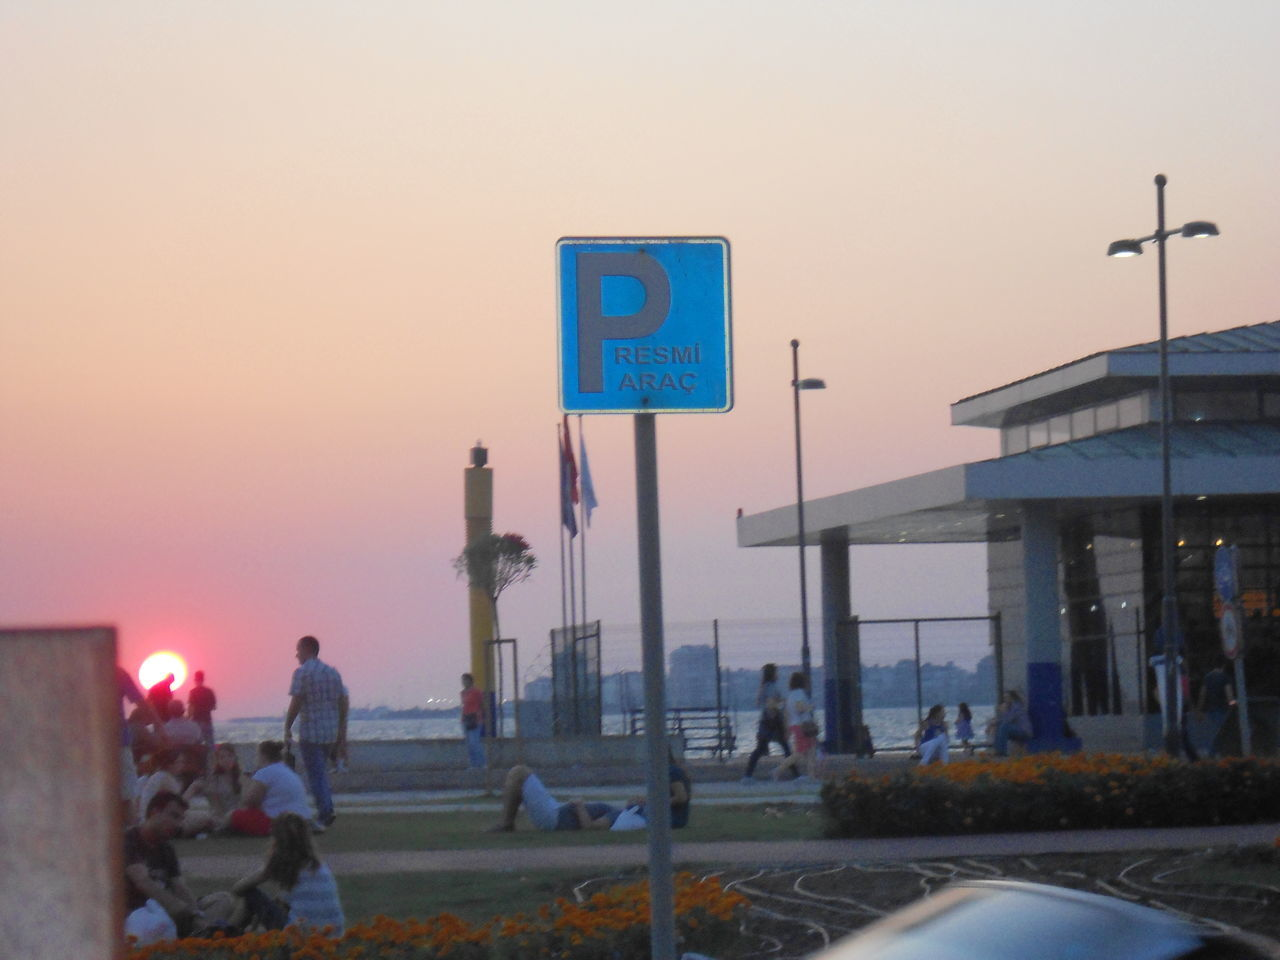 Turkey/ızmir-alsancak Sunset With Person Shadow Parking Lot There is a man at the front of sunset Merry People Who Try To Fish PARK(for Official Cars)